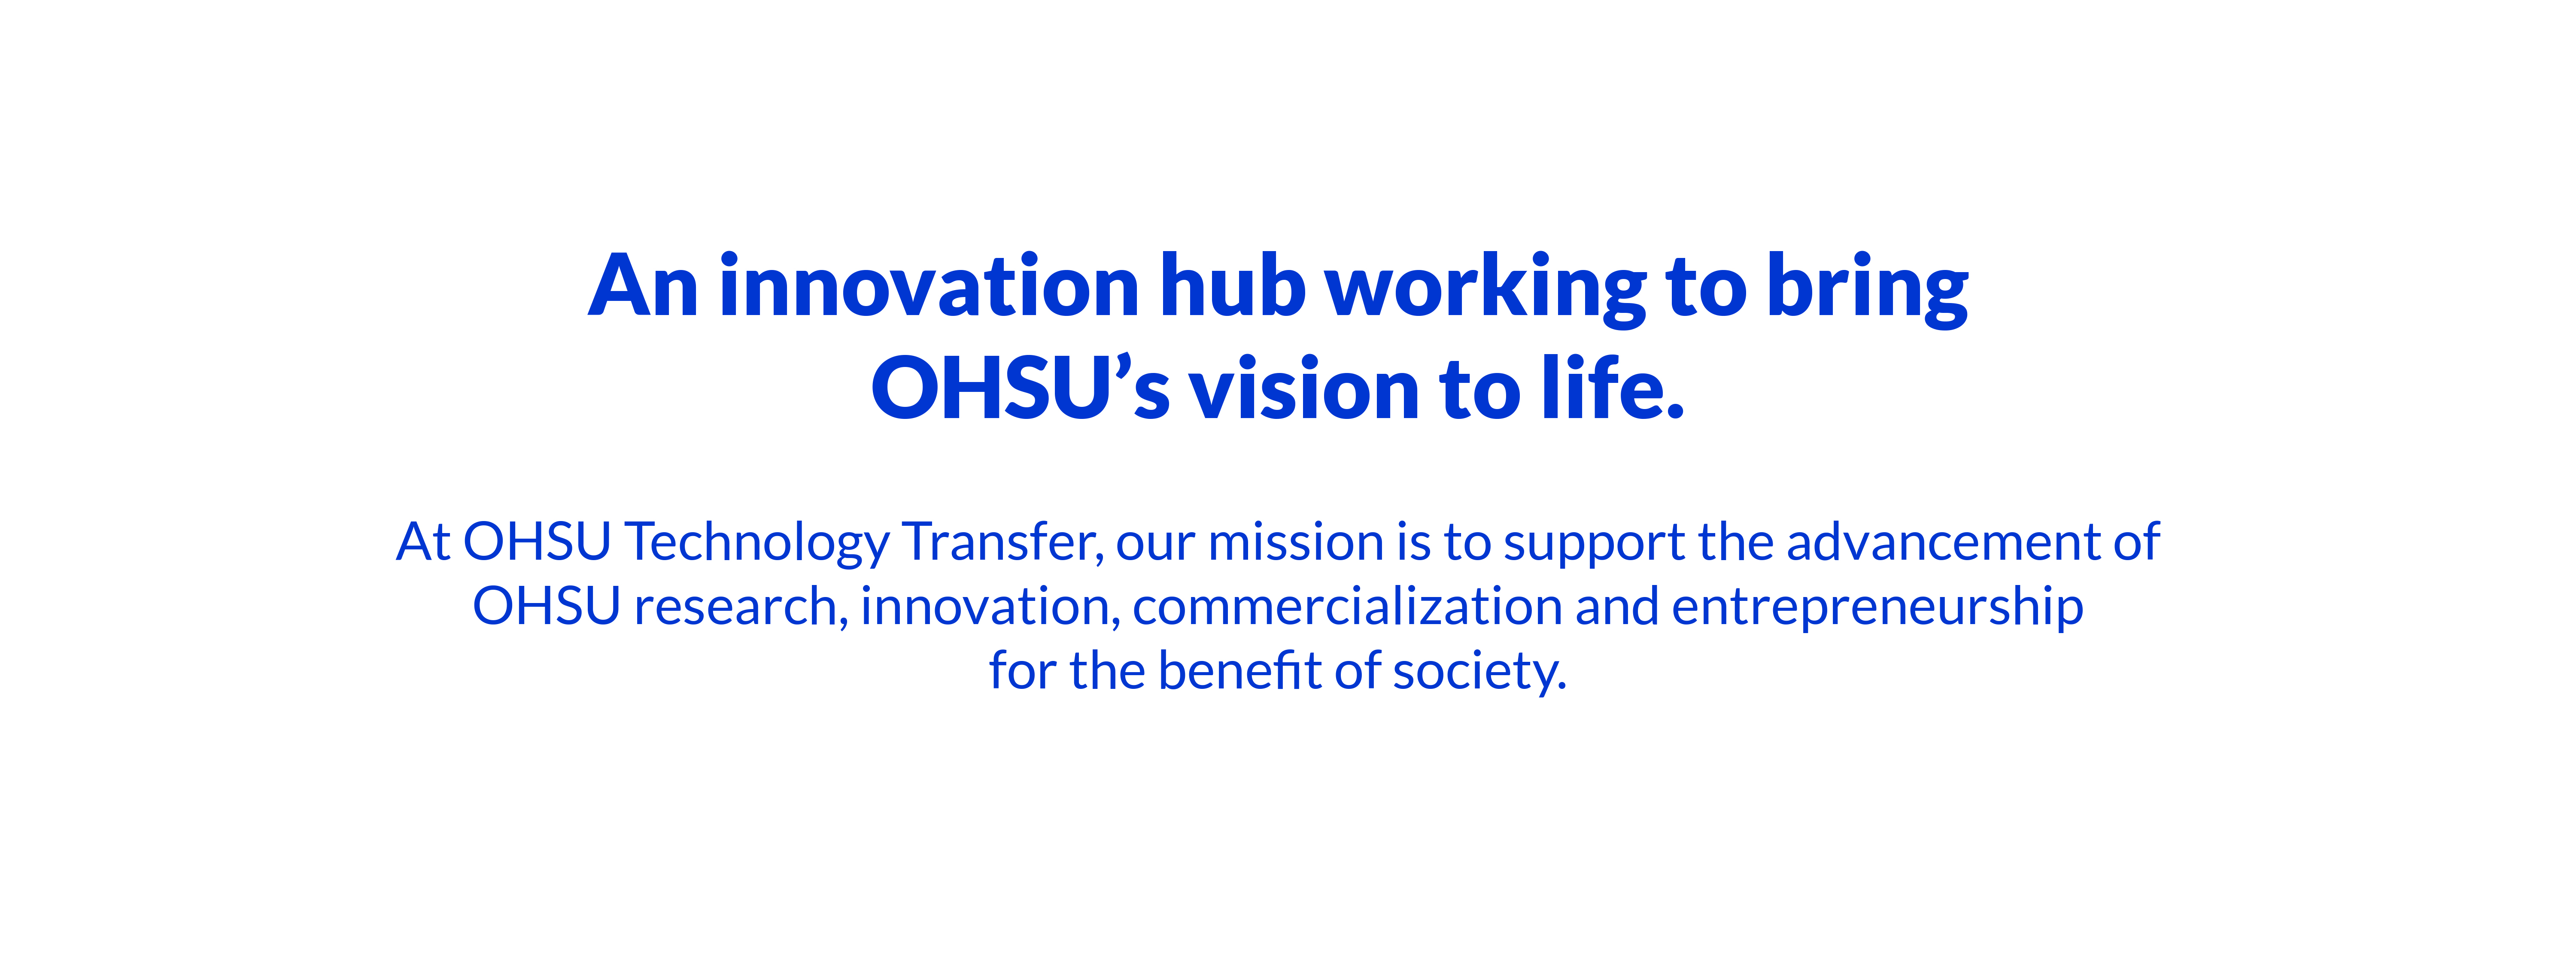 OHSU Technology Transfer advances research, innovation, commercialization and entrepreneurship at OHSU